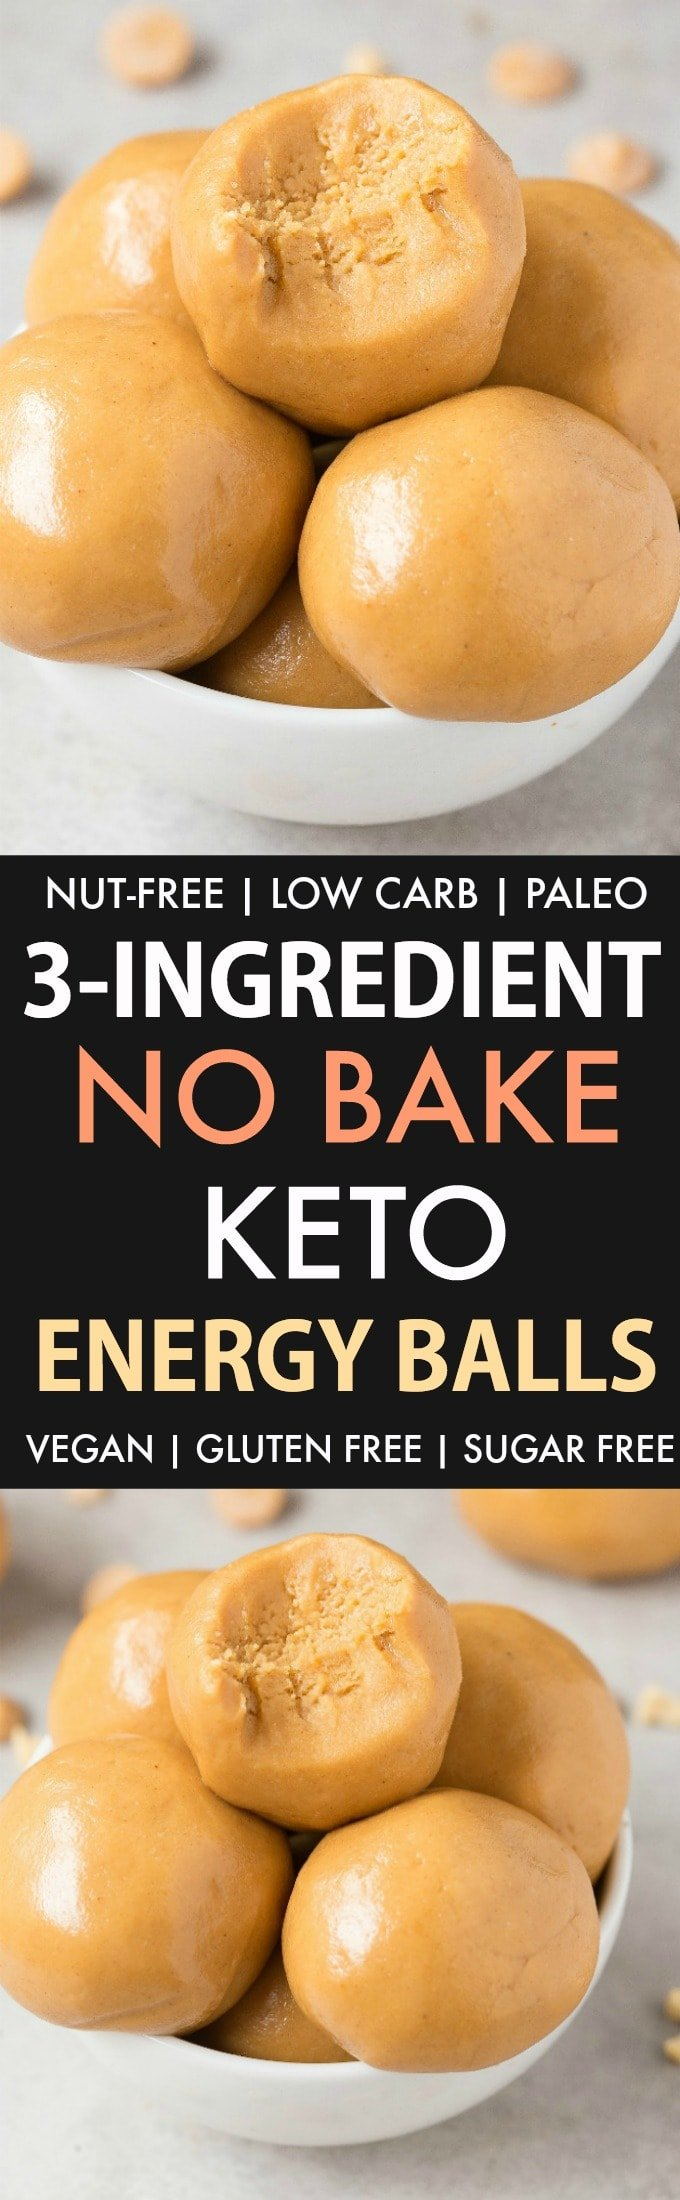 3 Ingredient No Bake Keto Energy Balls in a collage